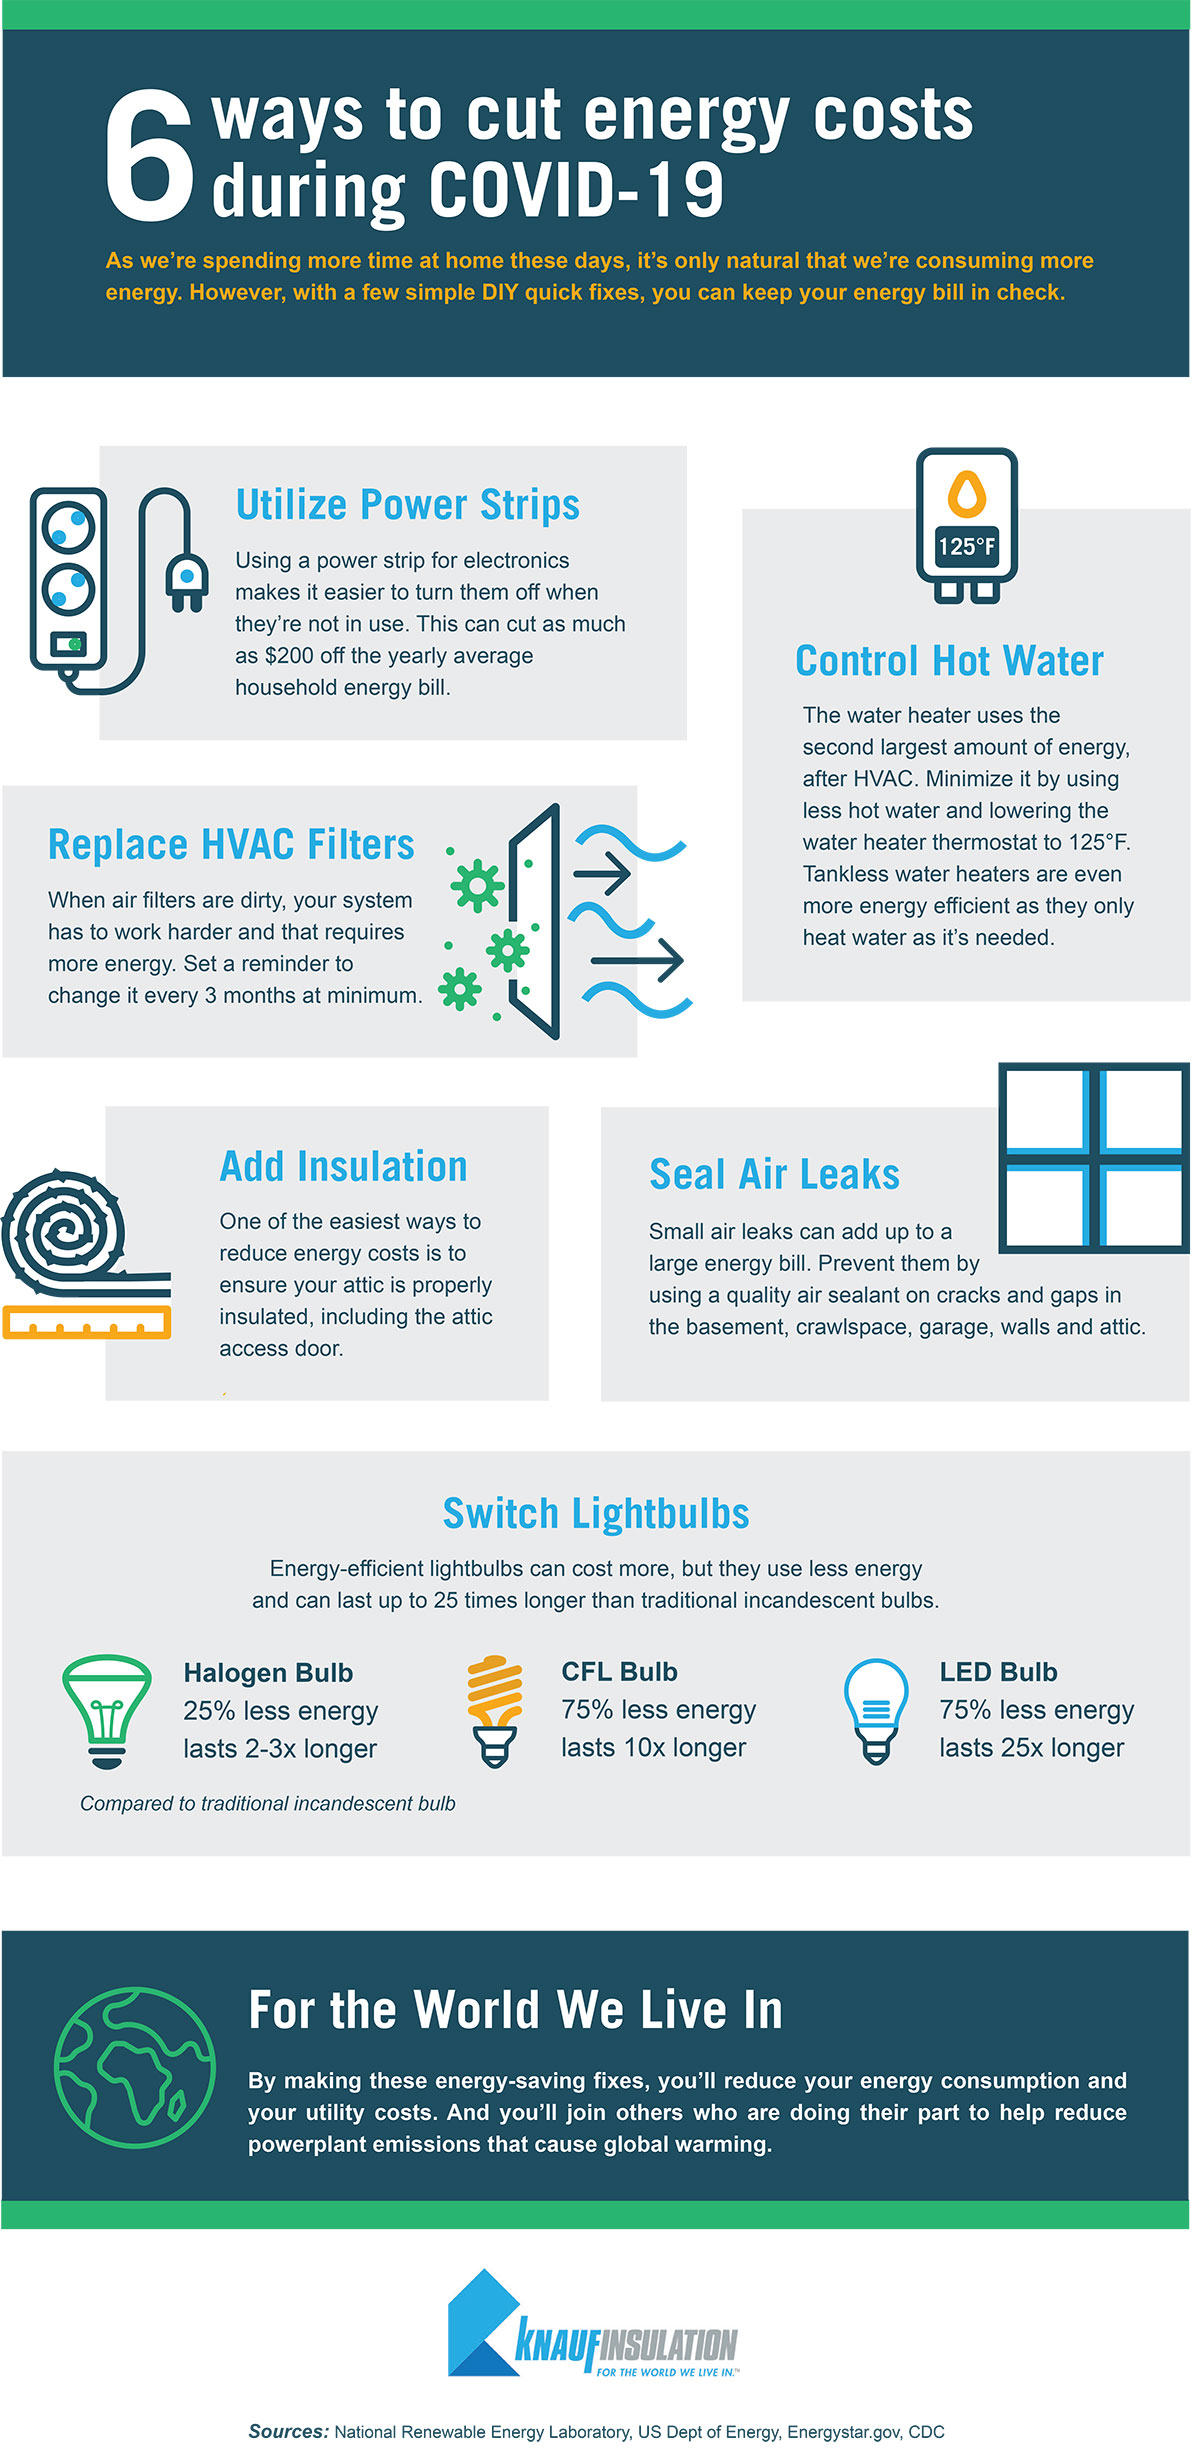 6 ways to save energy during COVID-19 - Infographic